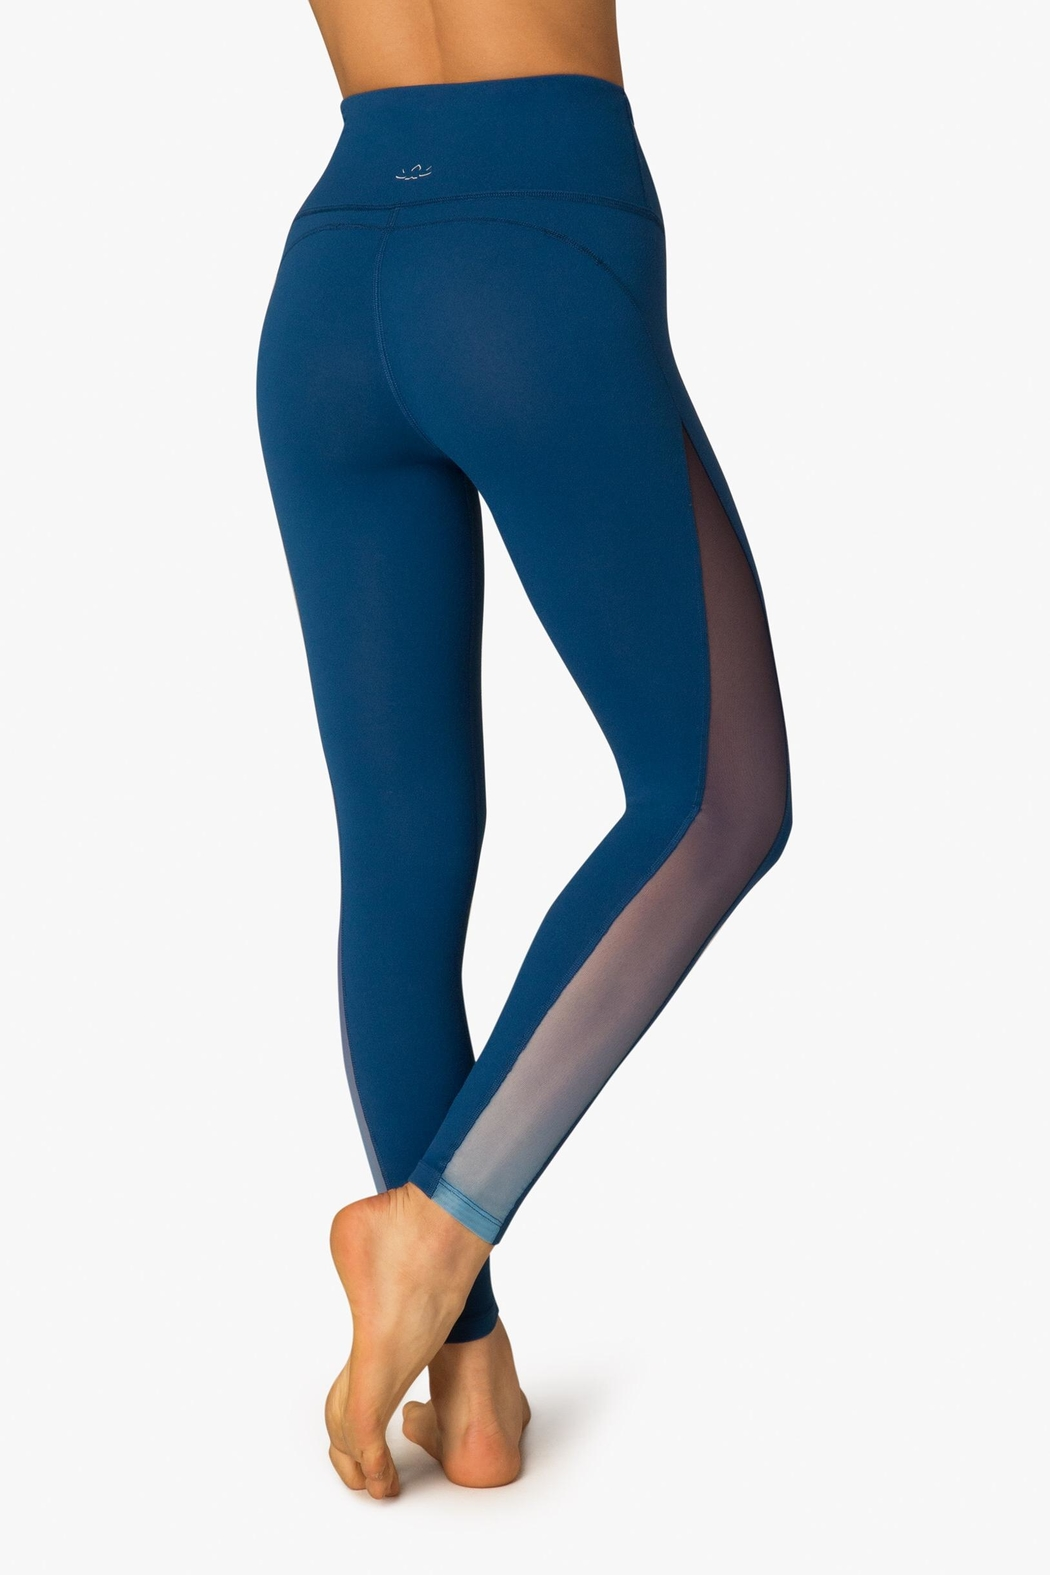 6a22a412fd0cbd Beyond Yoga Ombre Mesh Legging from Iowa by Namaste' Athleisure Wear ...